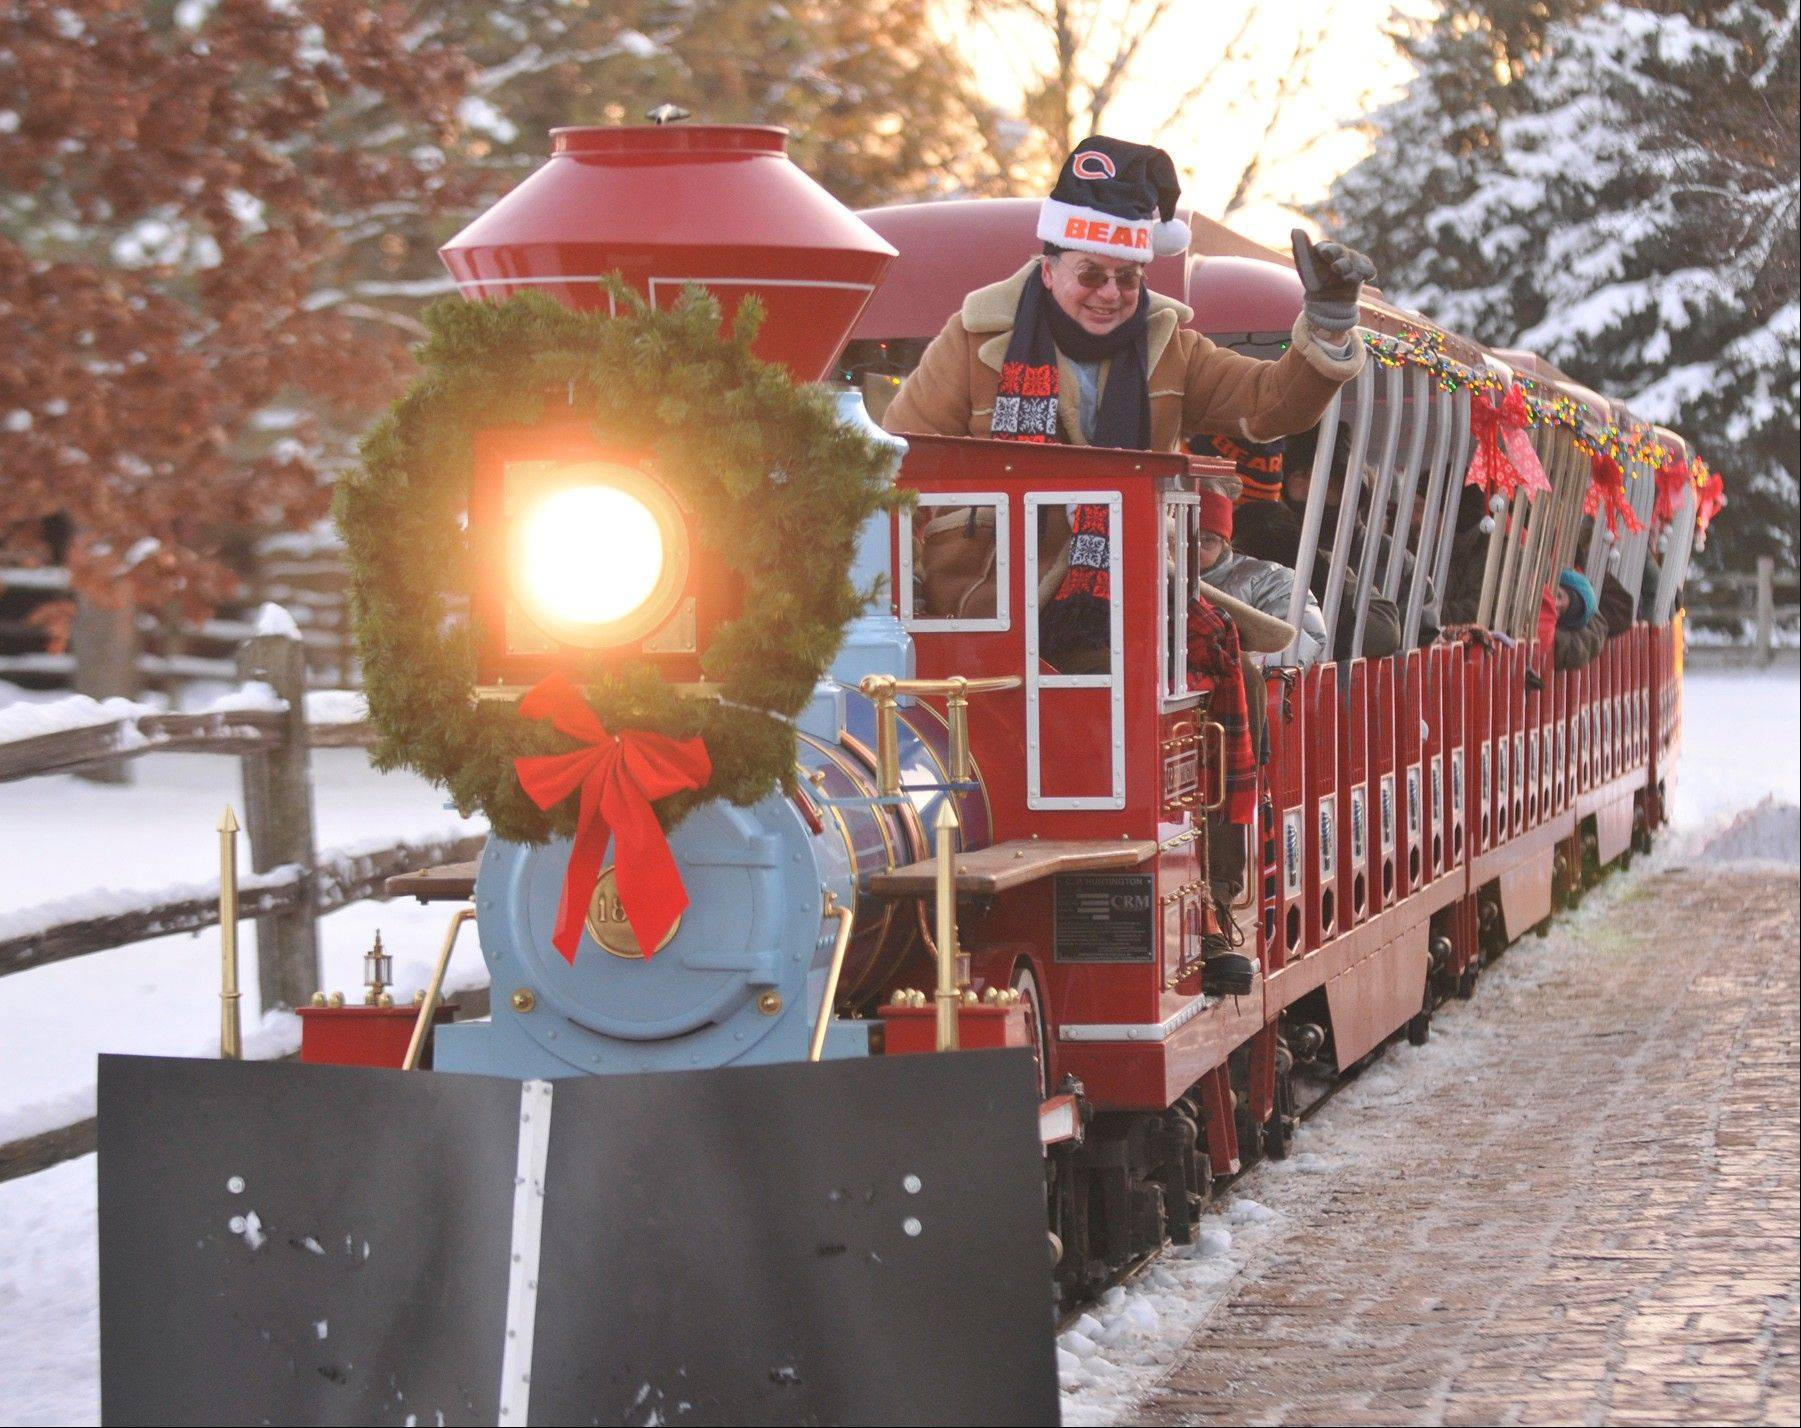 The Polar Express comes to life over three December weekends at Blackberry Farm in Aurora.